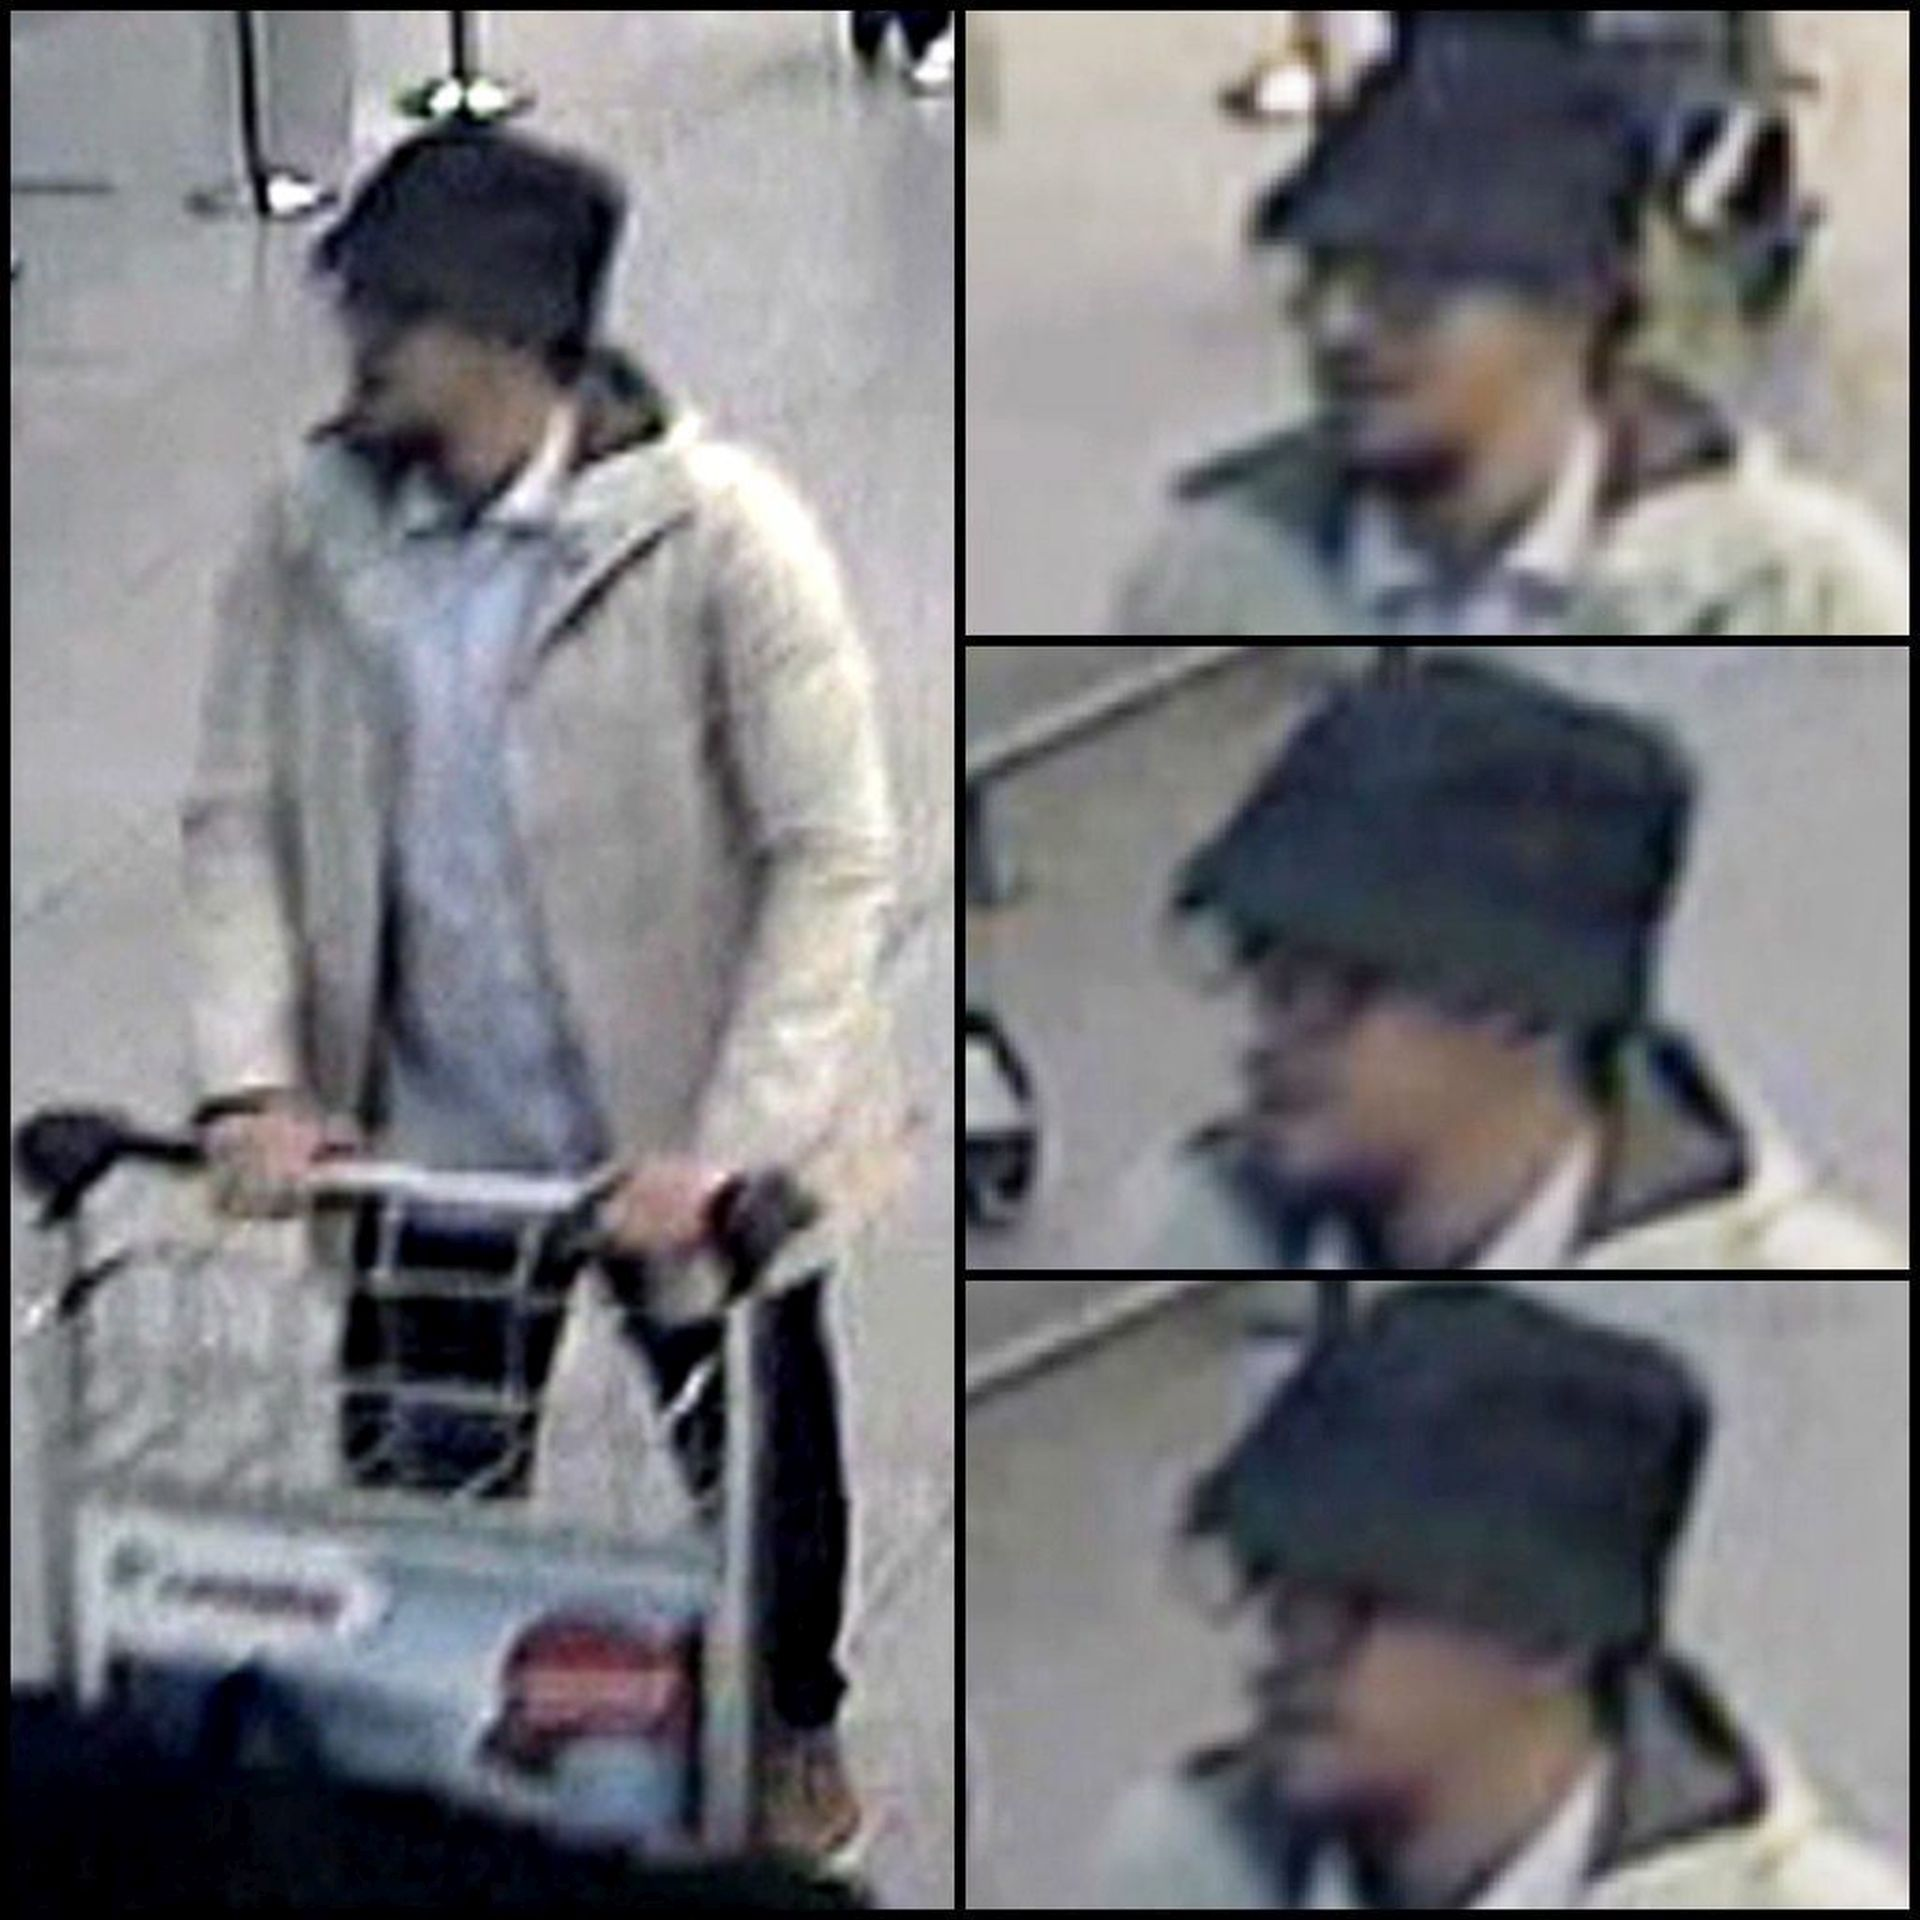 epa05233579 A composite handout photograph provided by Belgian Federal Police on 28 March 2016 shows CCTV grabs of a suspect in the Zaventem airport attack in Brussels, Belgium 22 March 2016. A surveillance camera at Zaventem airport in Brussels captured footage of the alleged perpetrators of the explosions that took place 22 March. Belgian police issued CCTV footage on 28 March 2016 in an attempt to identify the third suspect, dressed in a white jacket and wearing a black hat. EPA/BELGIAN FEDERAL POLICE / HANDOUT BEST QUALITY AVAILABLE HANDOUT EDITORIAL USE ONLY/NO SALES HANDOUT EDITORIAL USE ONLY/NO SALES